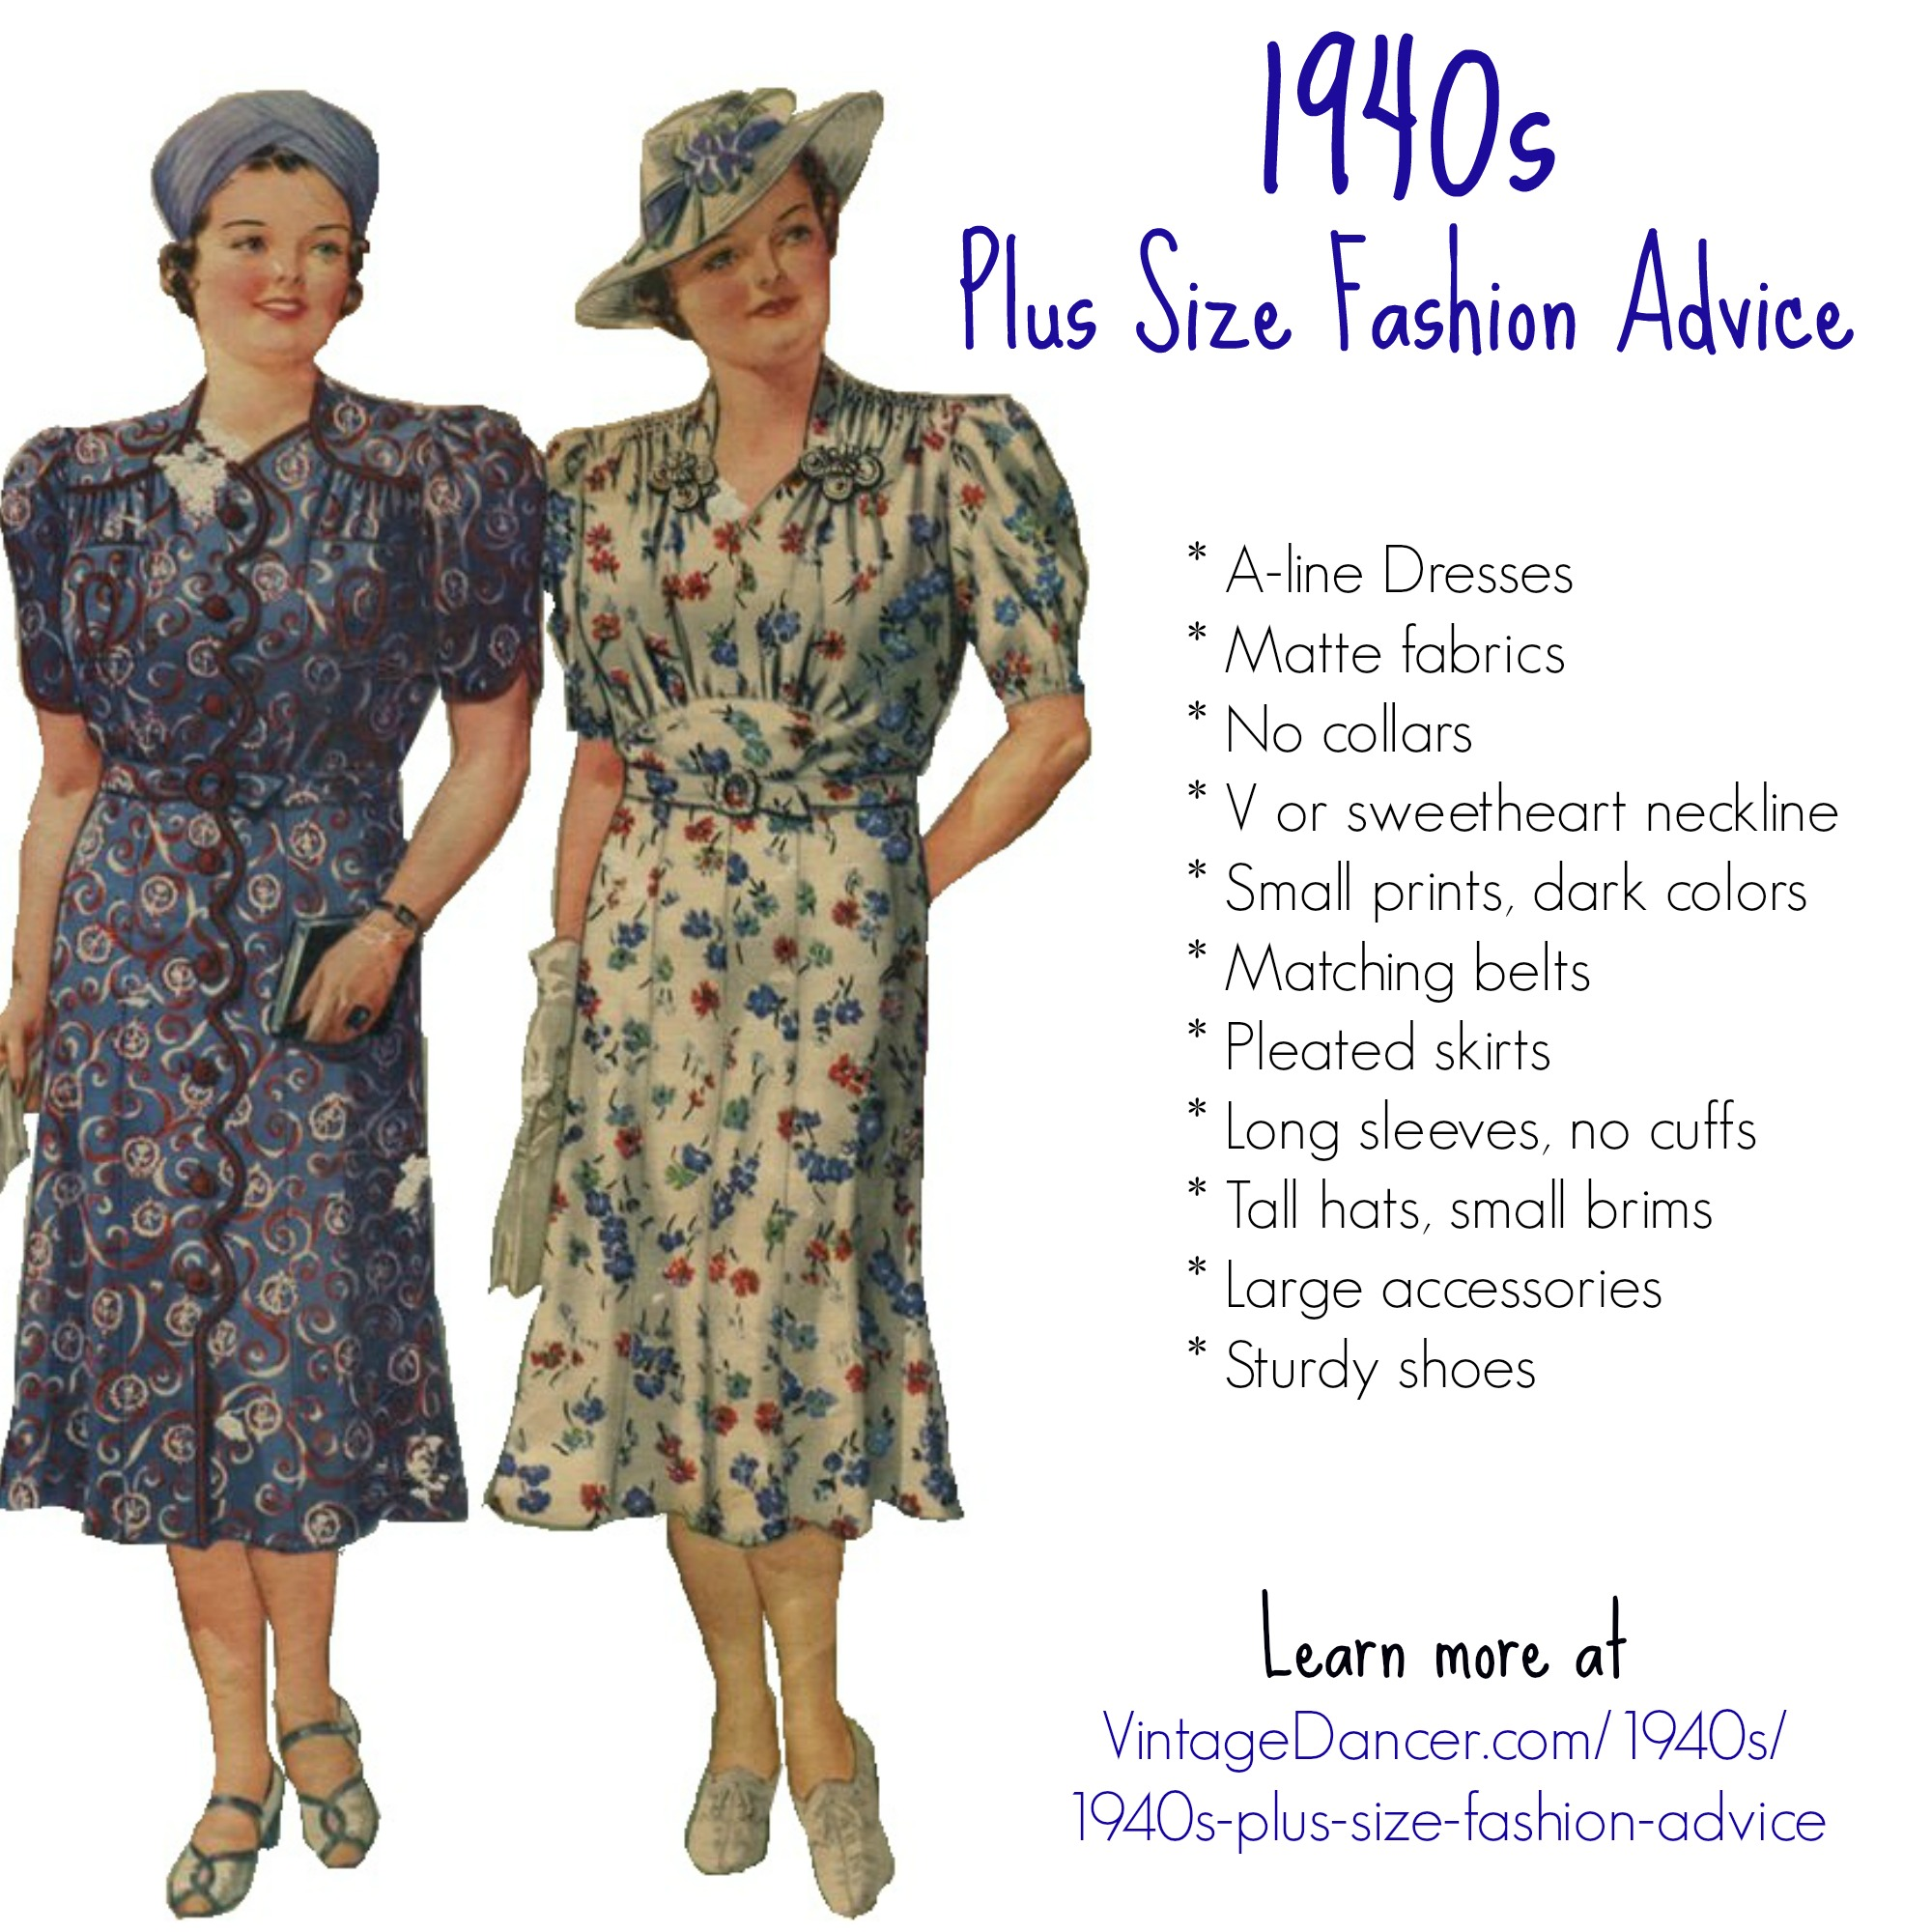 1940s Plus Size Fashion Style Advice From 1940s To Today